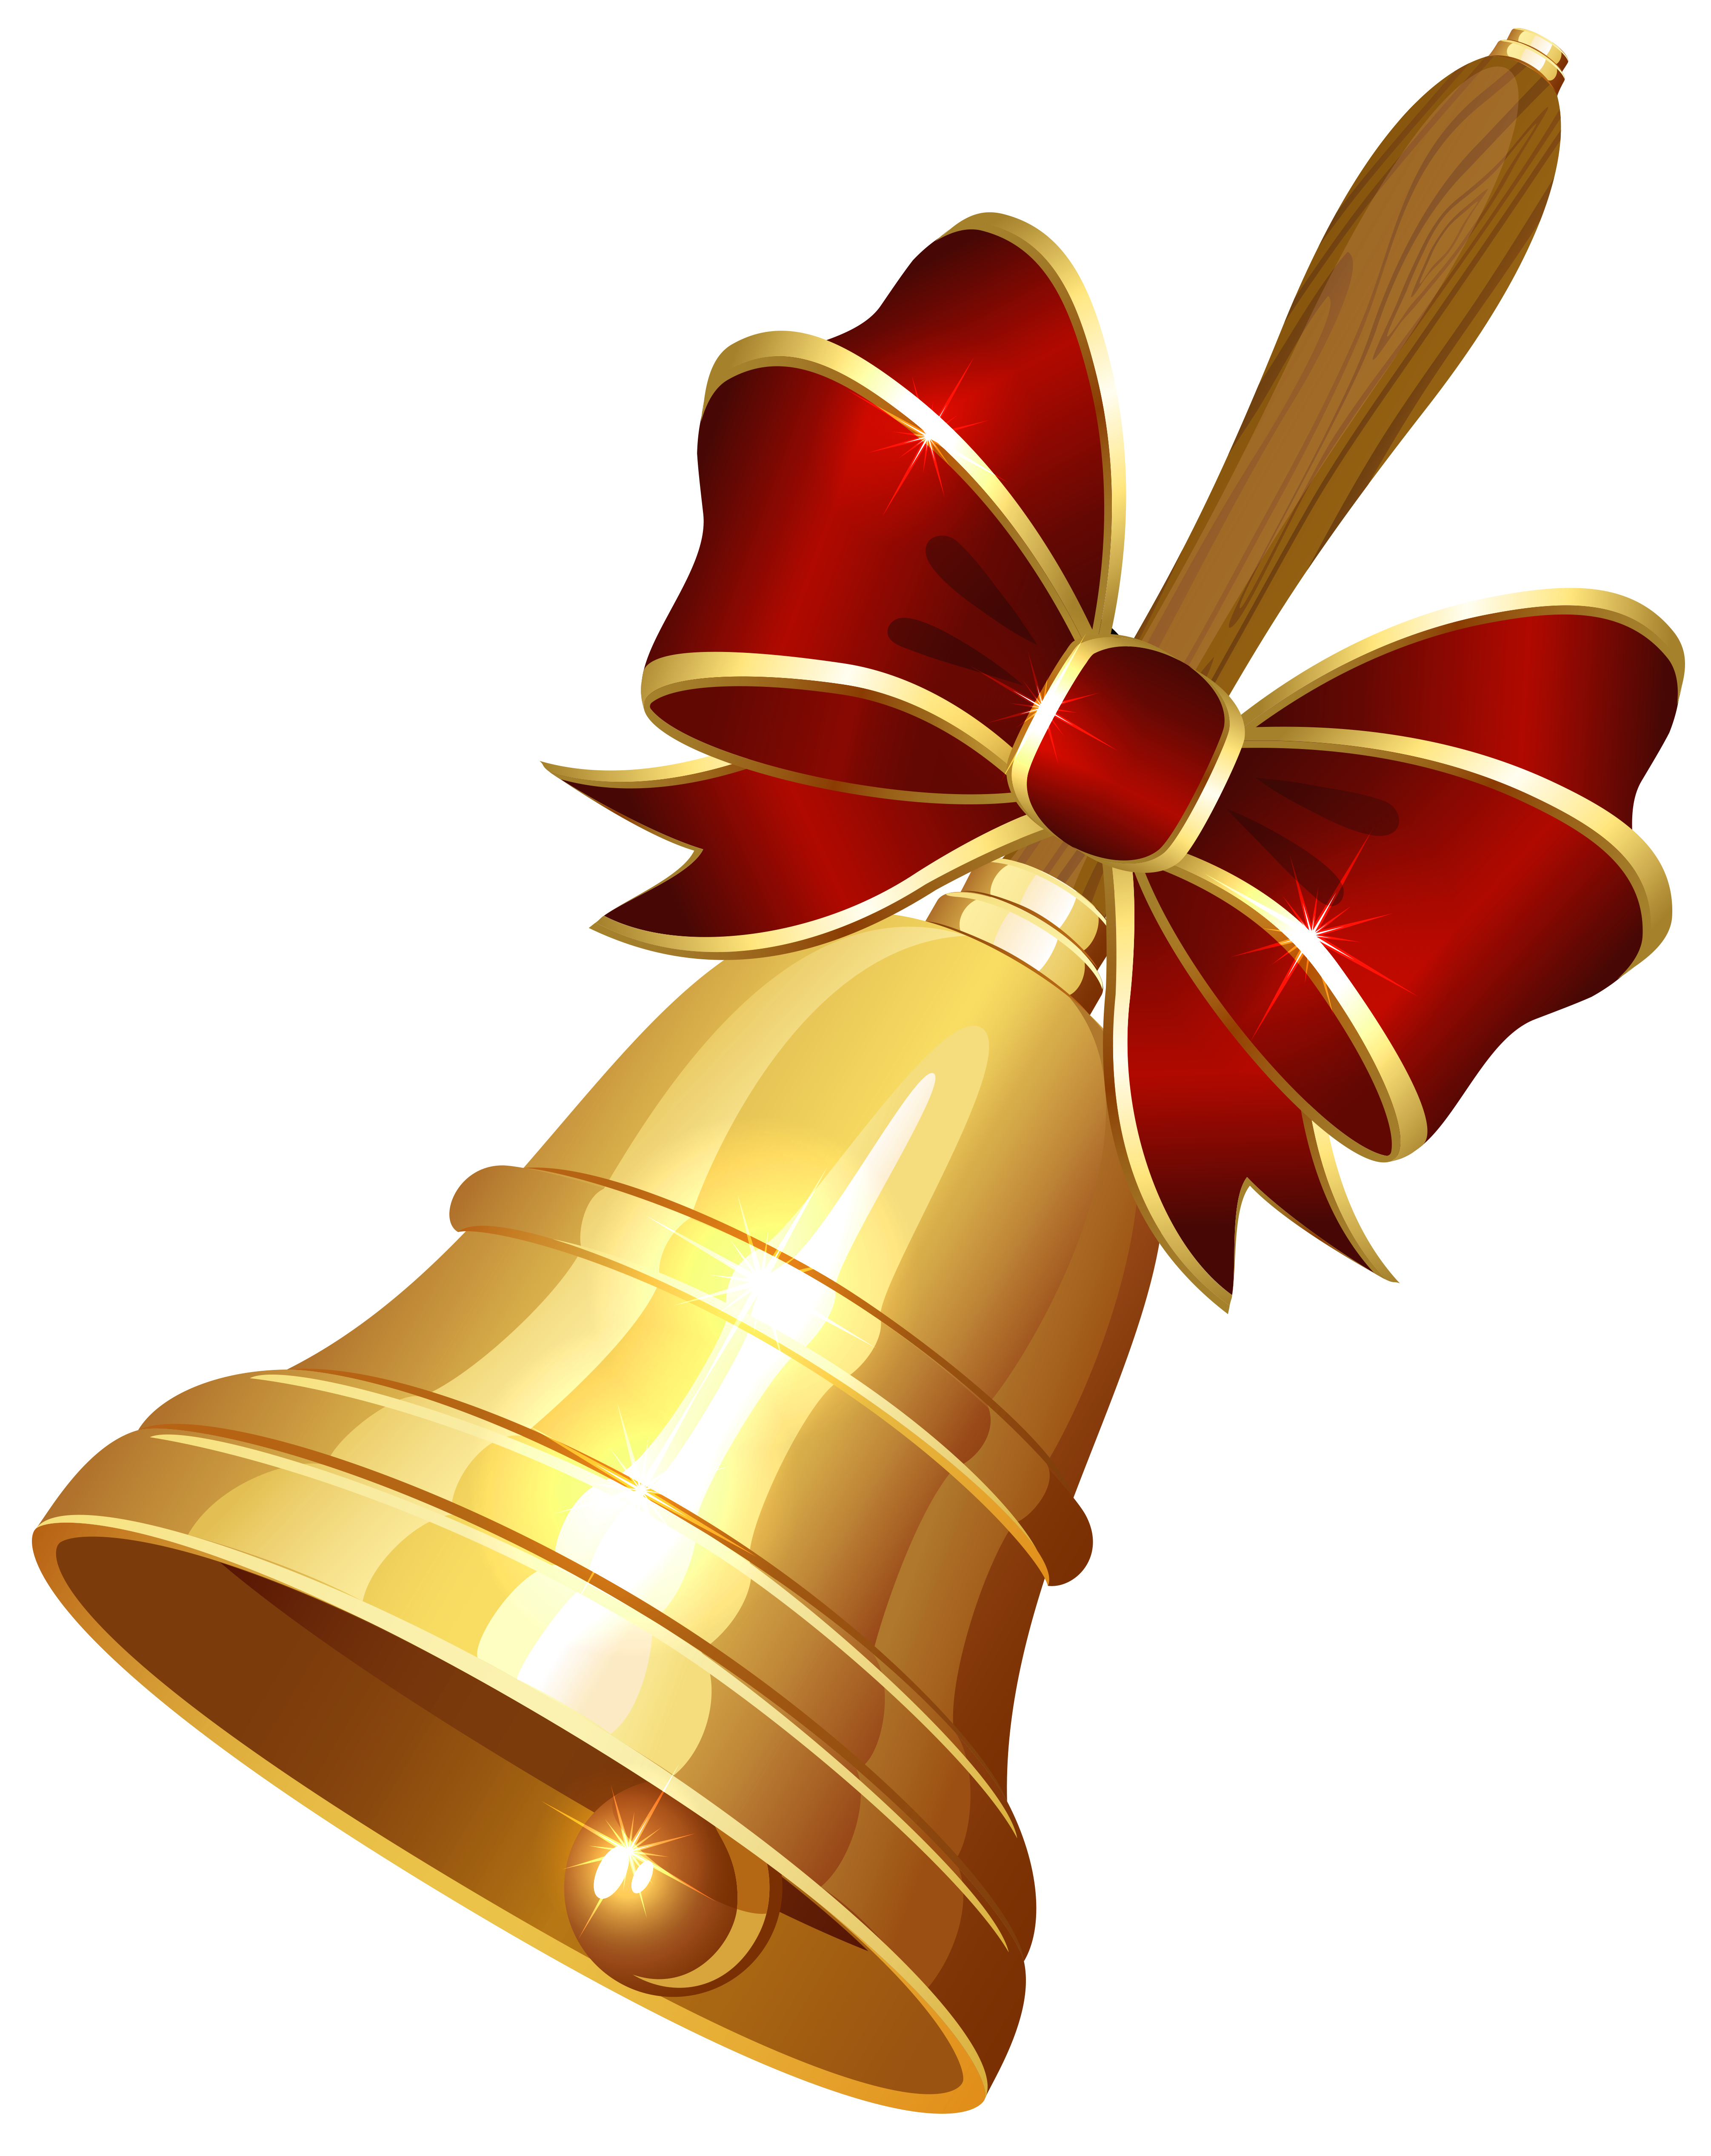 School bell png no background. With red ribbon clipart